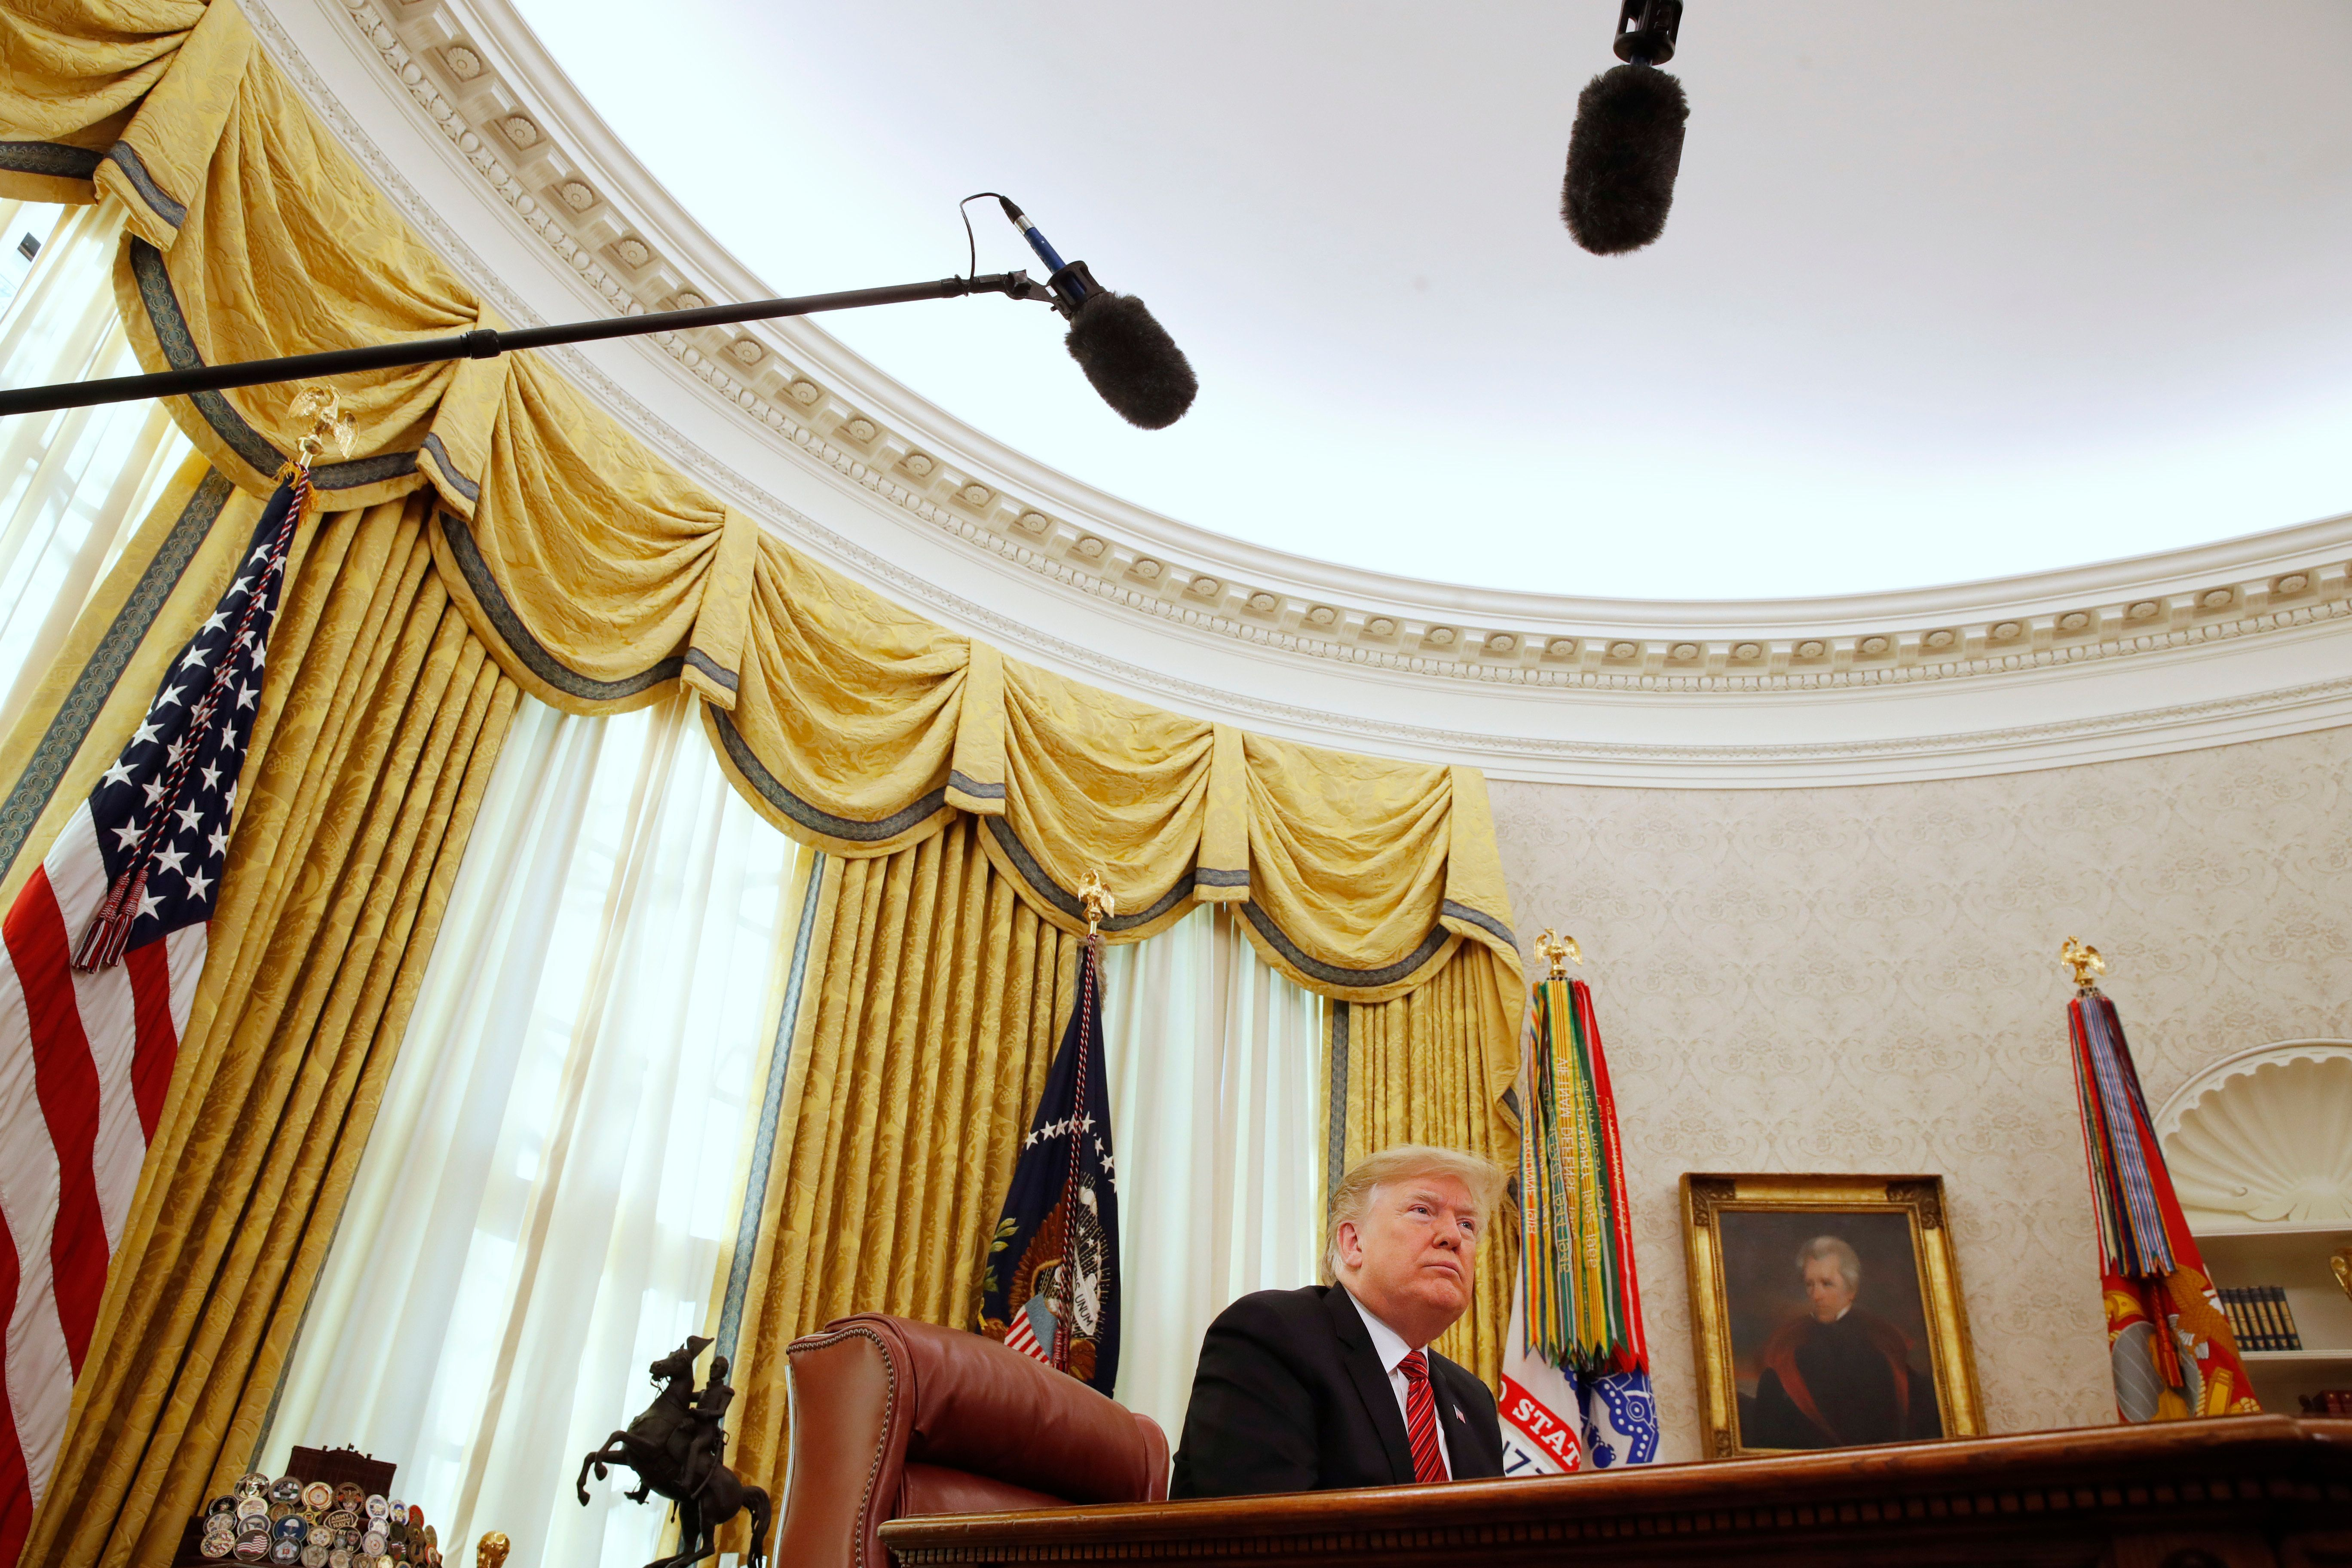 President Donald Trump listens to questions from the media after speaking with members of the military by video conference on Christmas Day, Tuesday, Dec. 25, 2018, in the Oval Office of the White House. (AP Photo/Jacquelyn Martin)